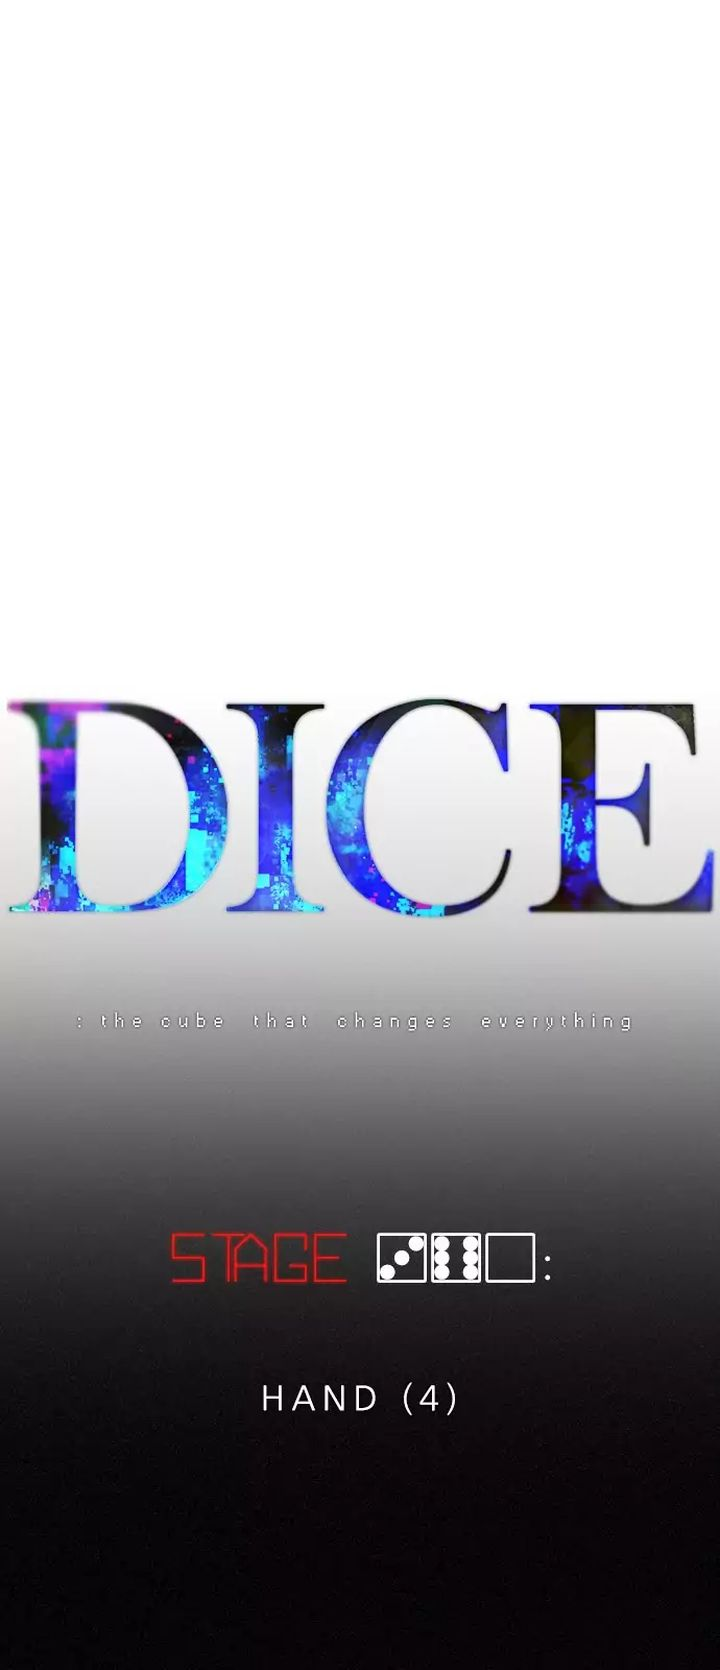 dice_the_cube_that_changes_everything_360_7